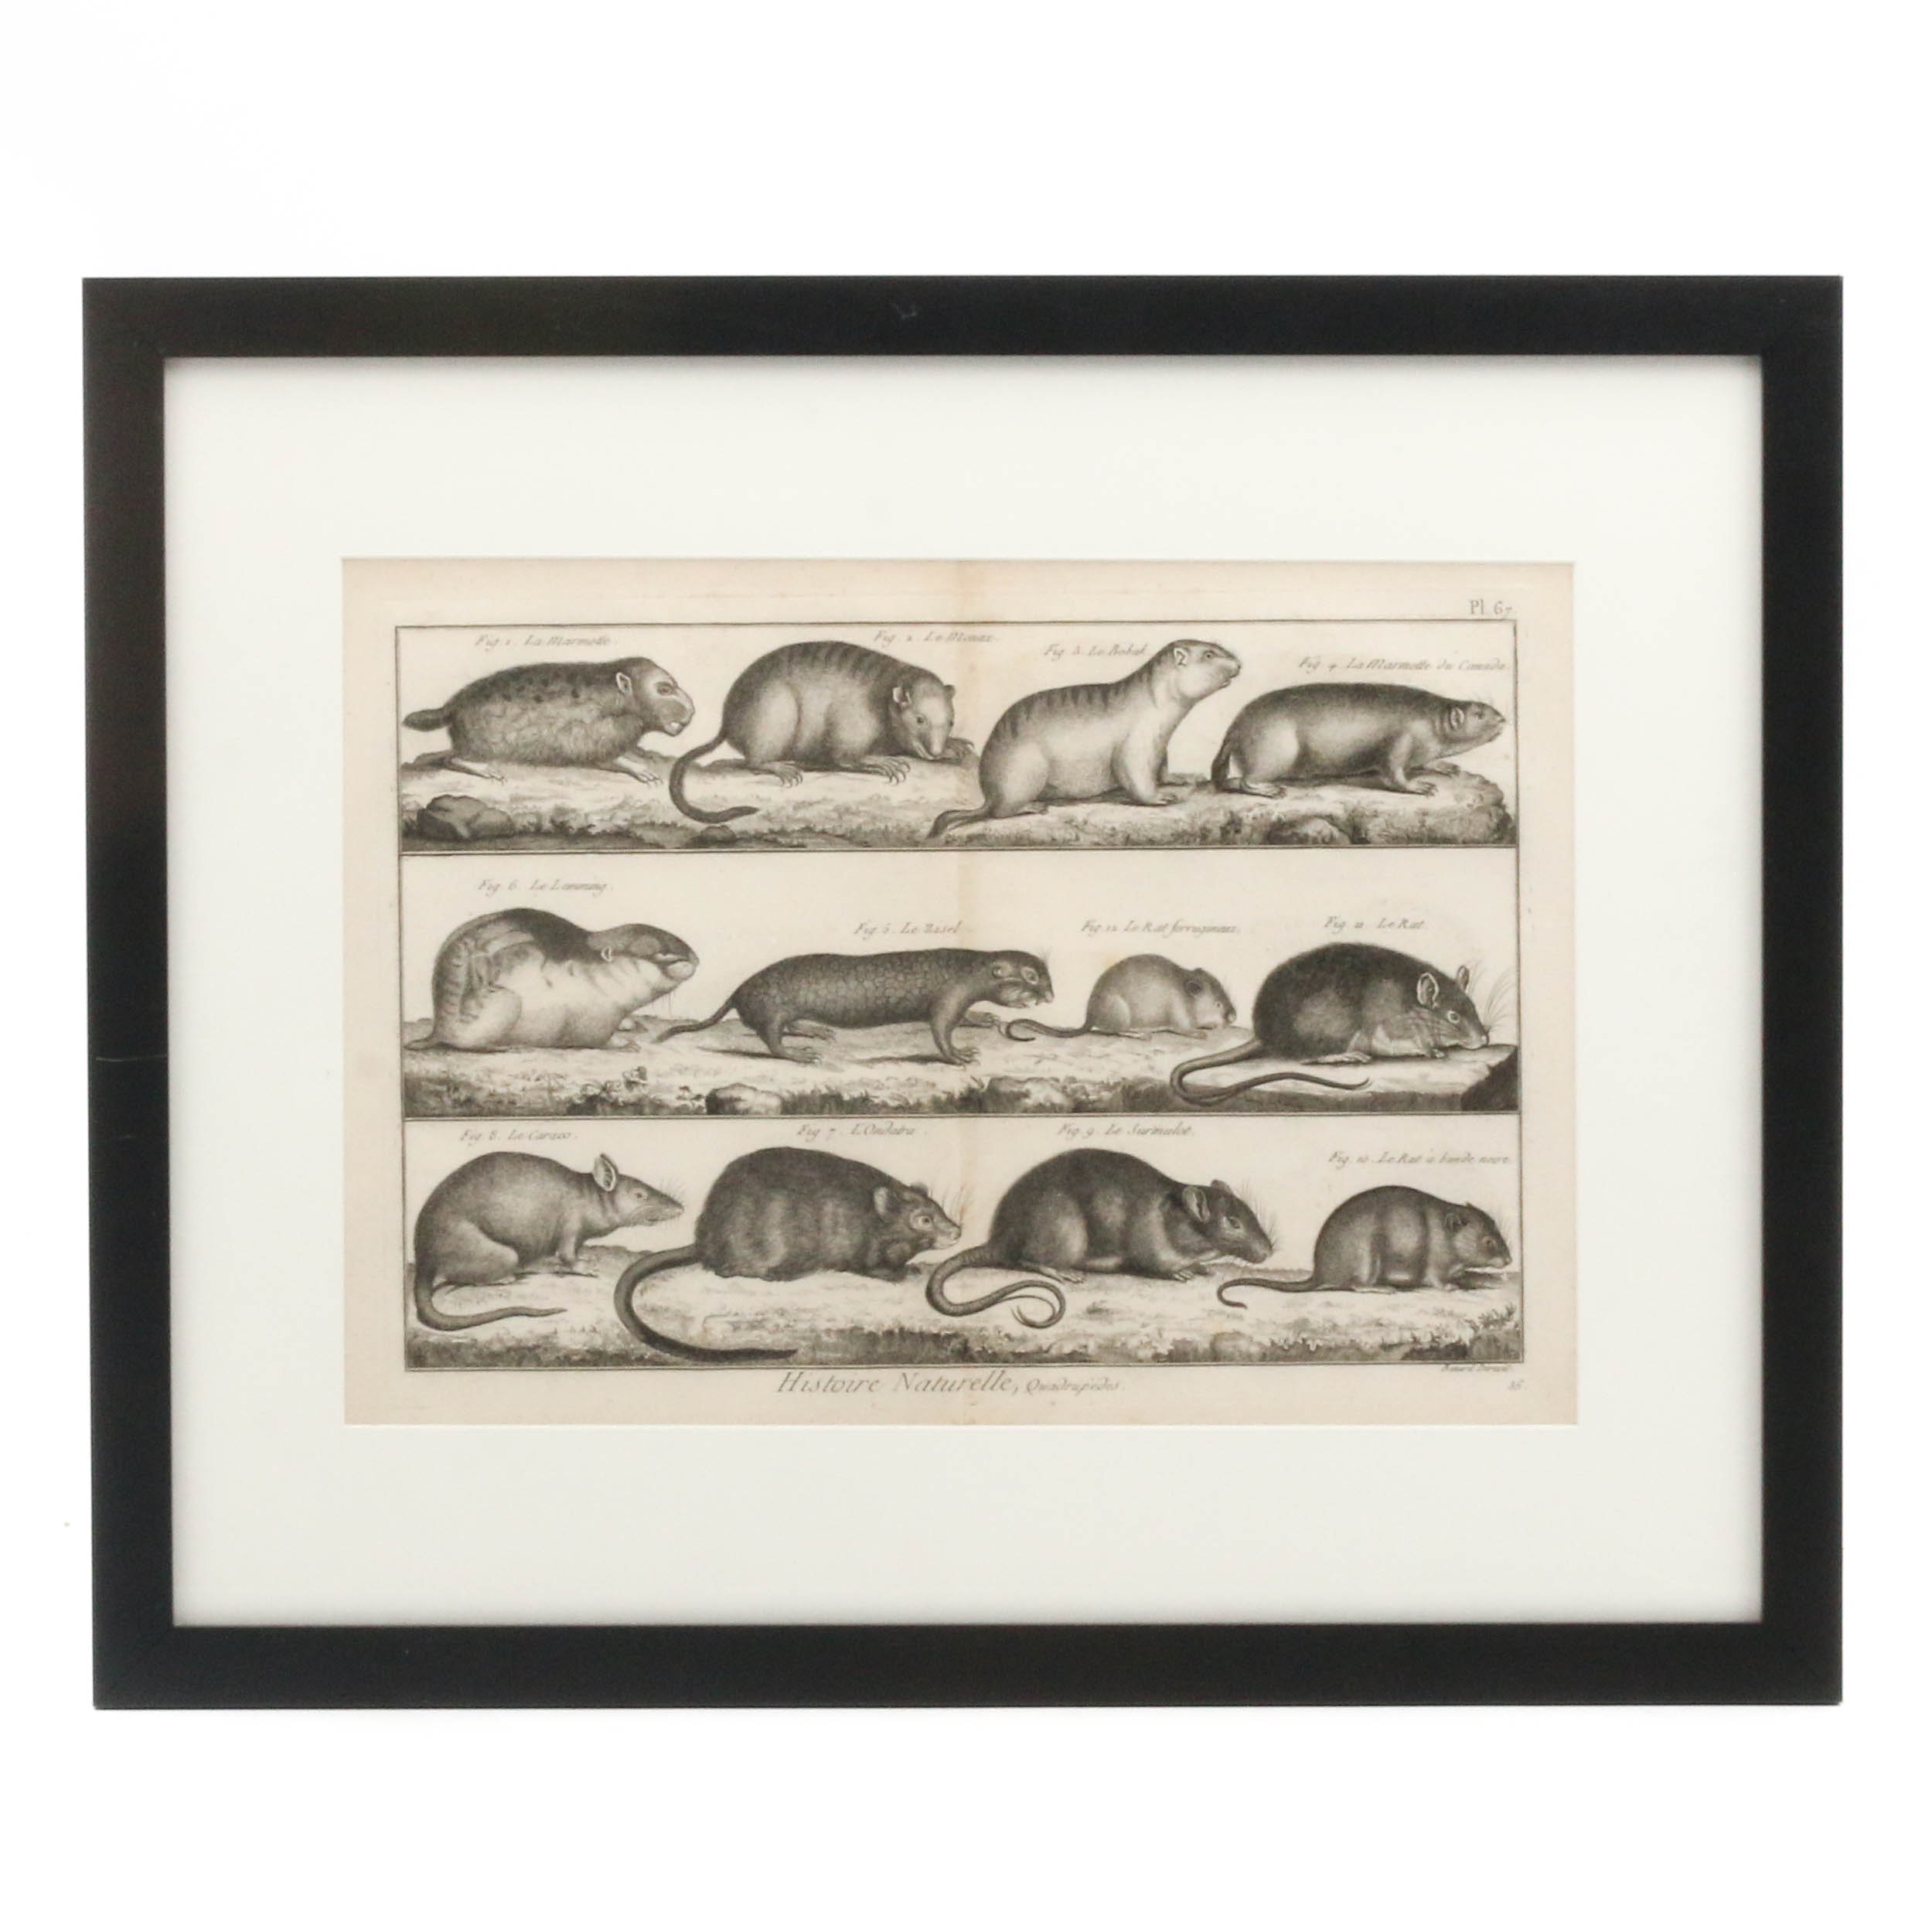 """Engraving of Rodents from Denis Diderot's """"L'Encyclopedie"""", circa 1760s"""